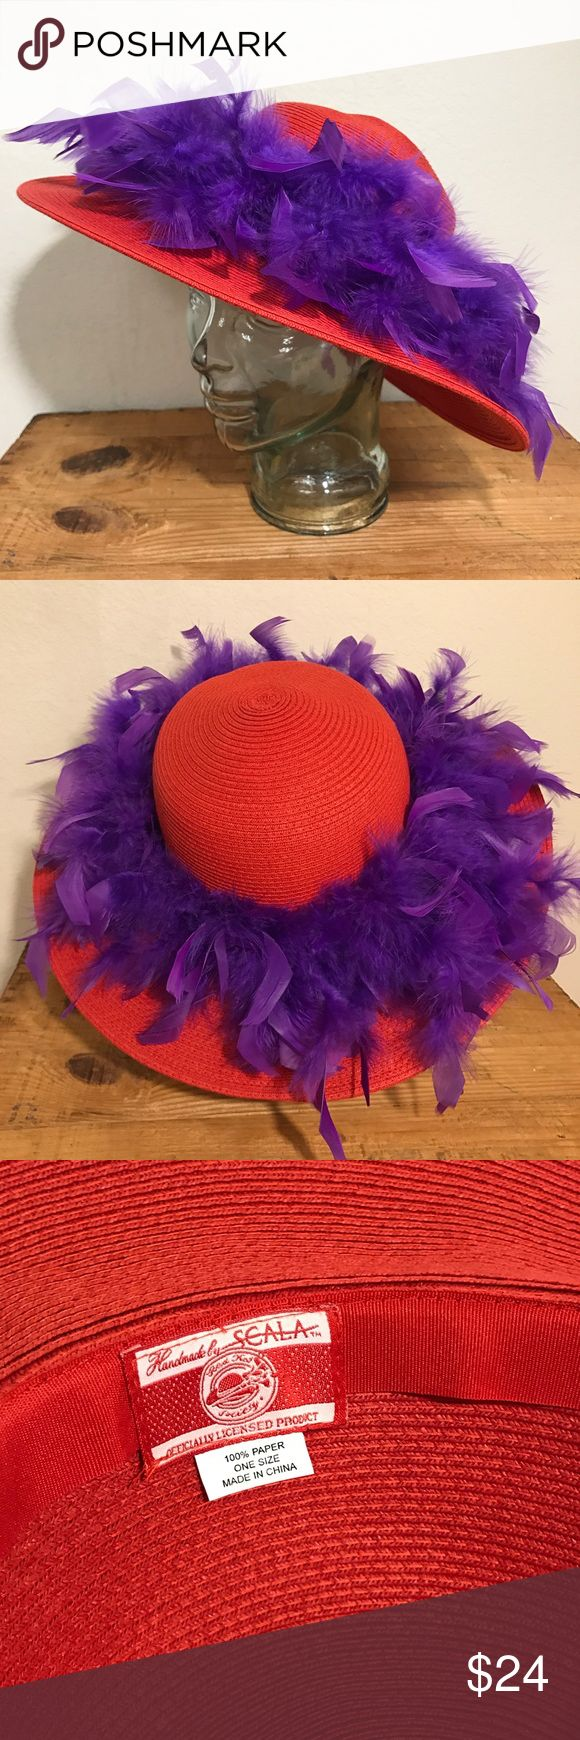 """Red Hat Society"" Hat by SCALA One Size ""Red Hat Society"" Red Hat Handmade by SCALA One Size With Purple Feathers  One Size fits most  Hat is 100% paper  Trimmed in purple feathers   Please see photos as we do consider them to be a part of the description. Scala Accessories Hats"